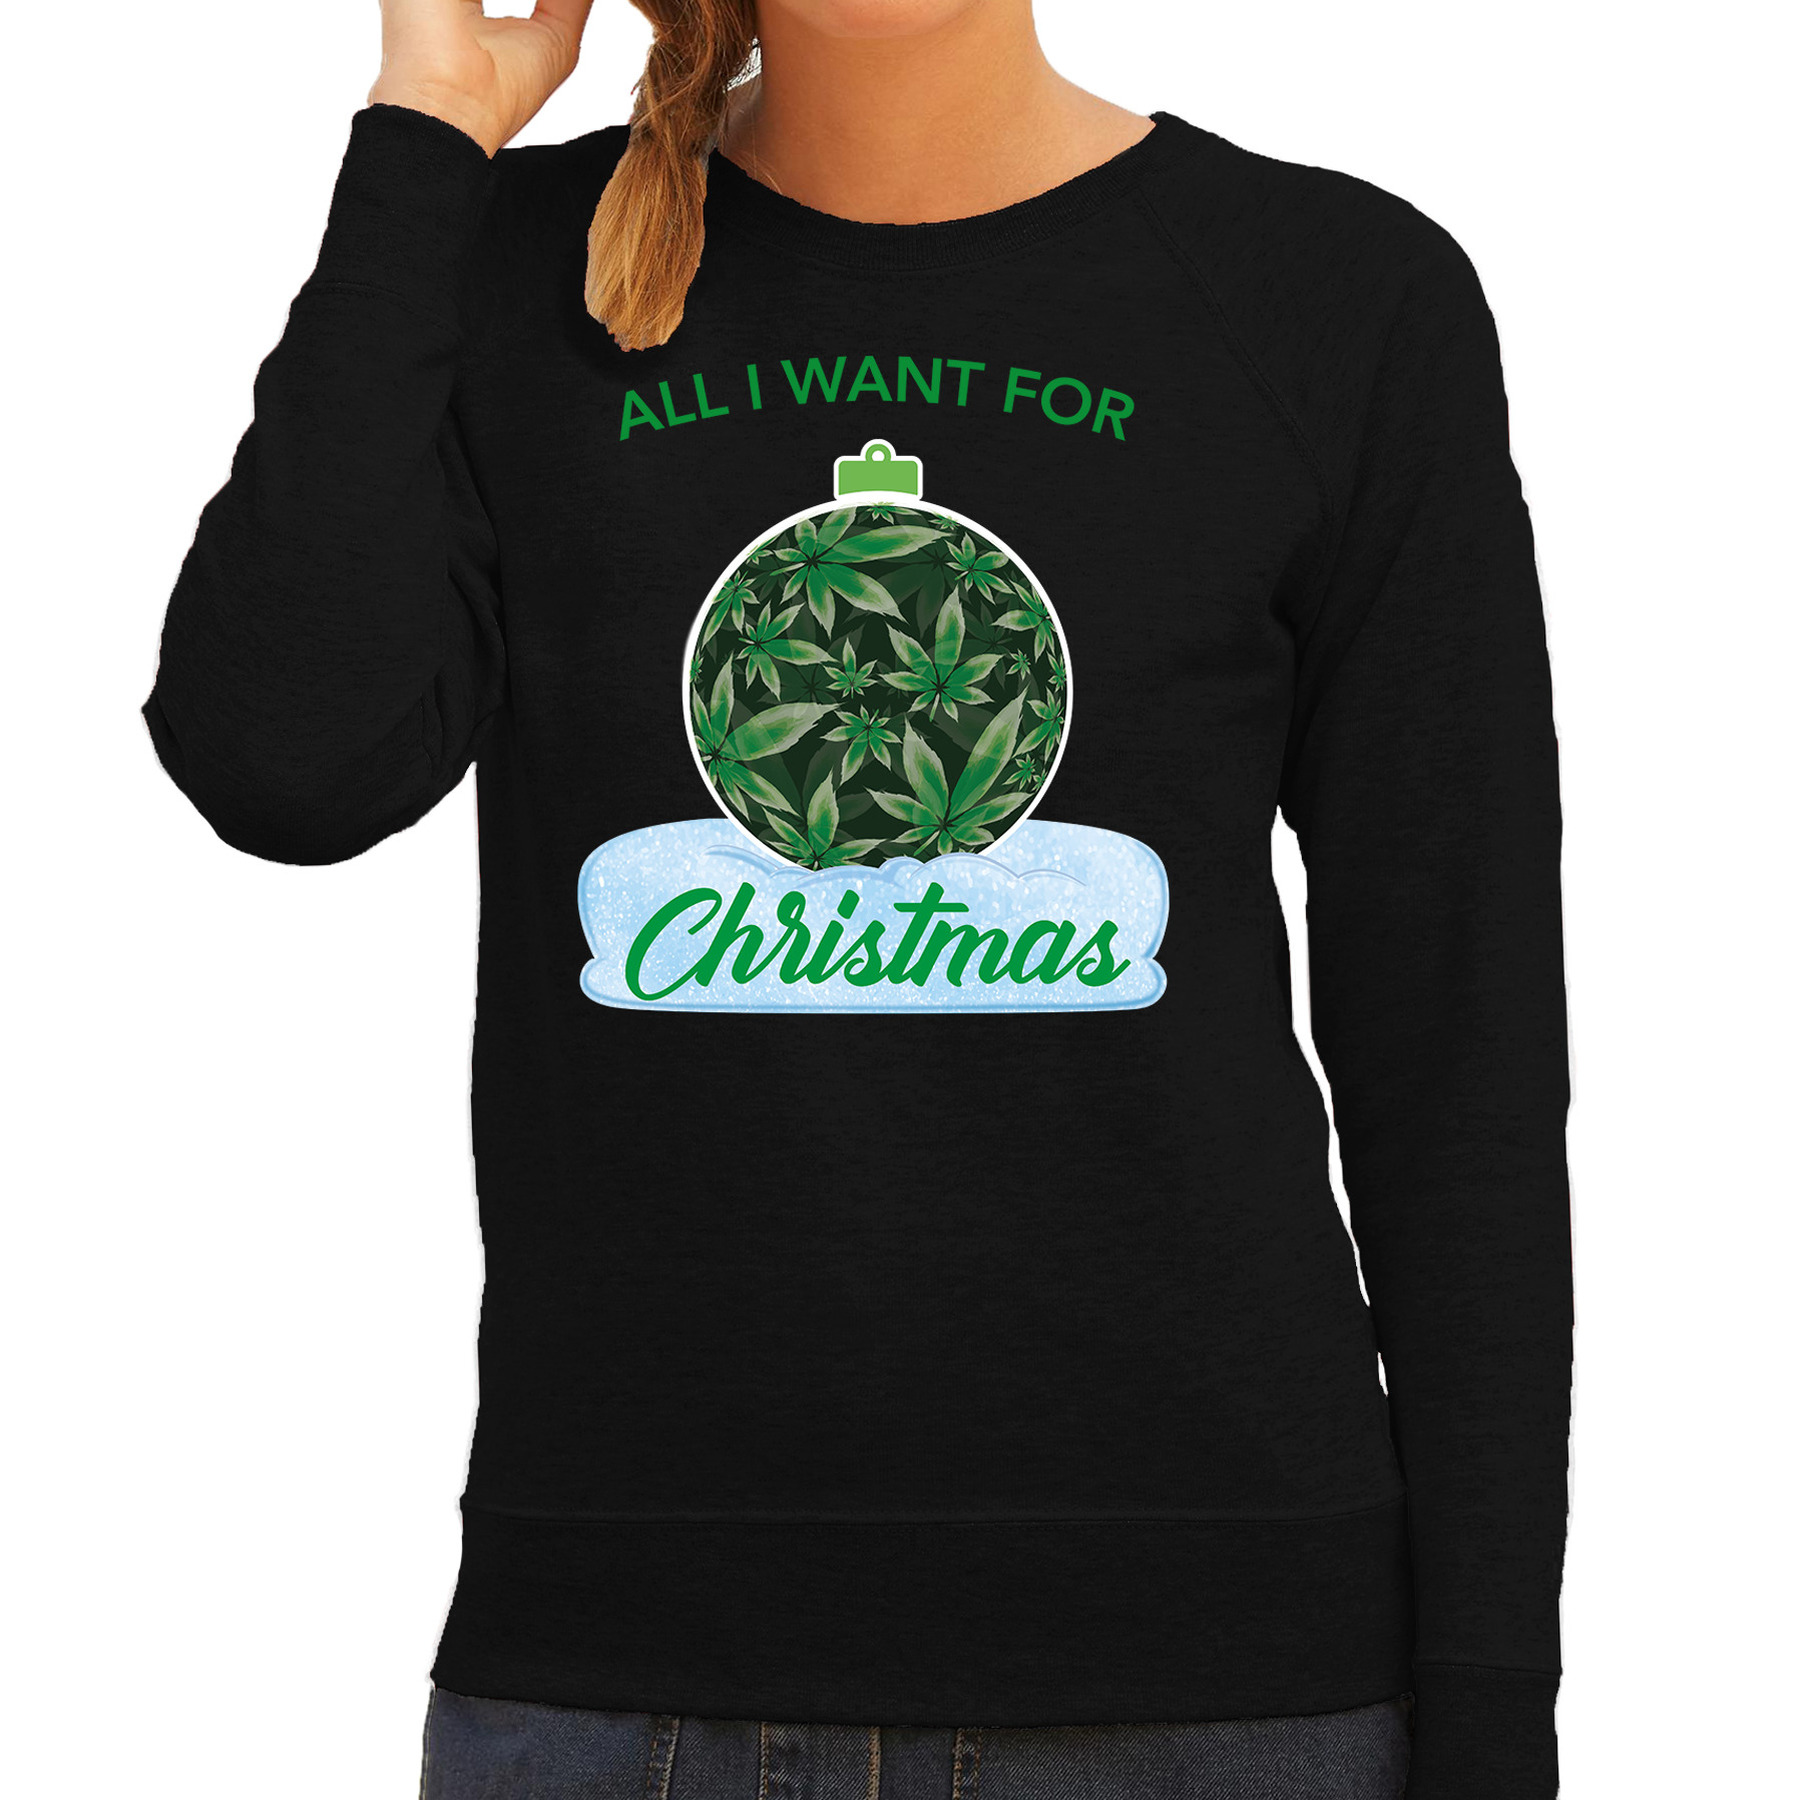 Wiet Kerstbal sweater - outfit All i want for Christmas zwart voor dames